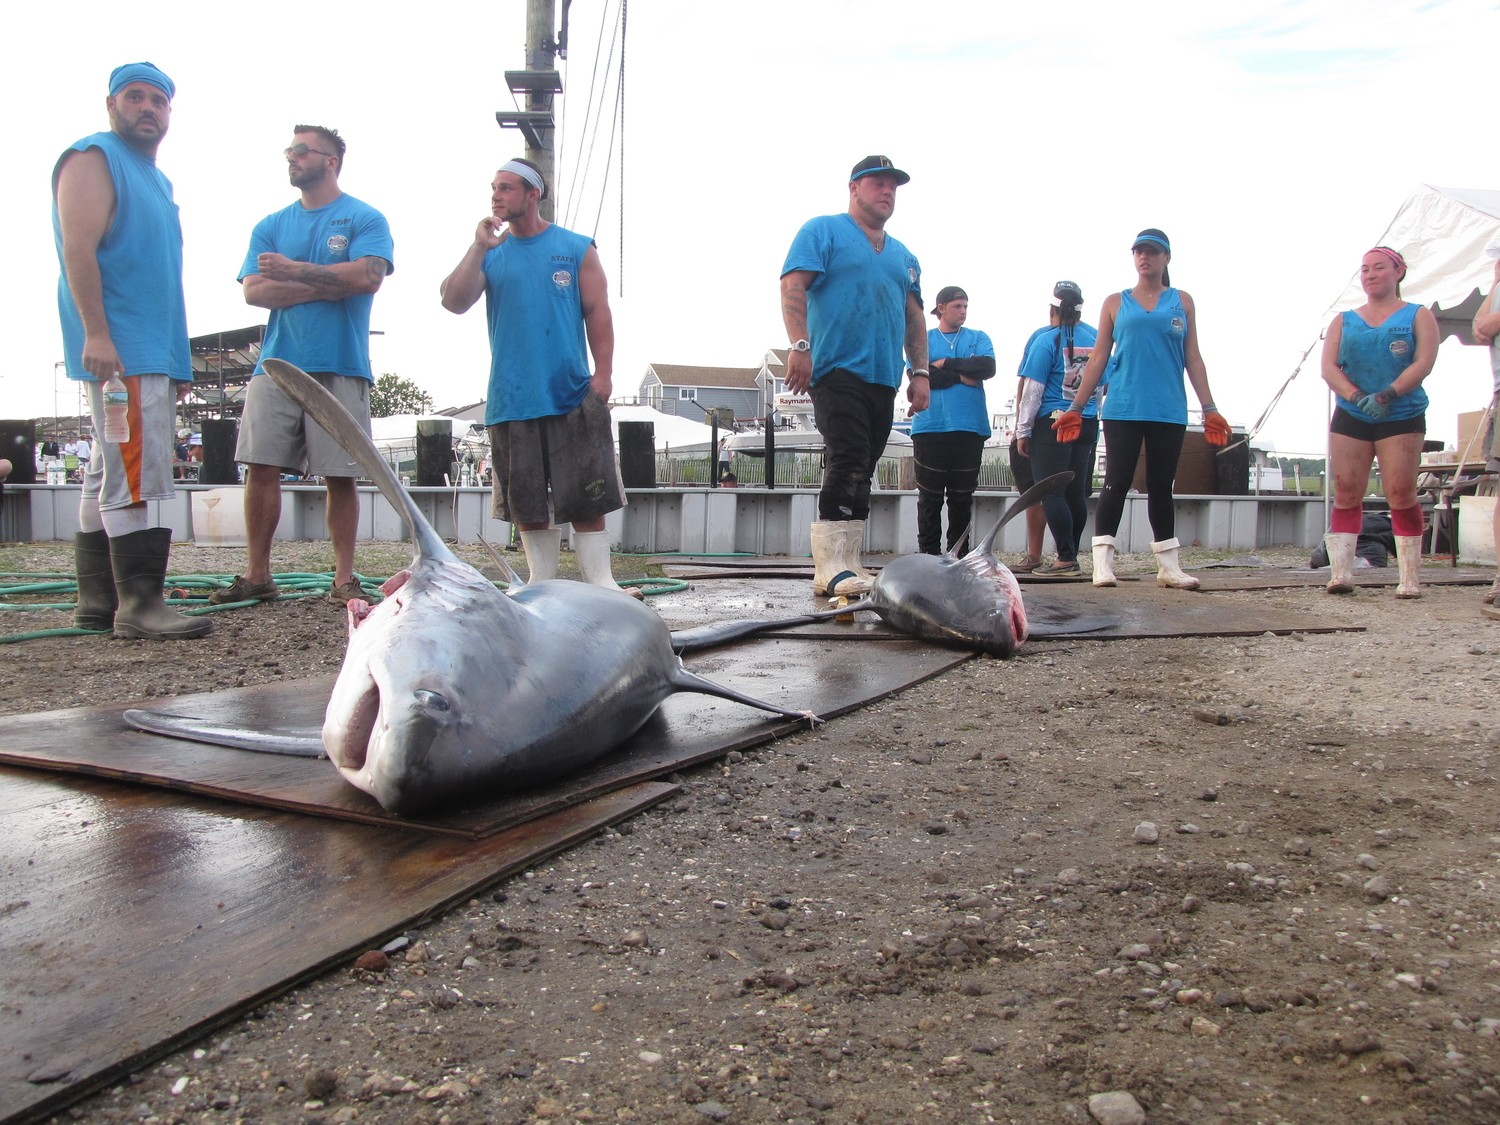 Tournament volunteers started weighing and measuring sharks as the boats started arriving at the Guy Lombardo Marina in Freeport on Saturday at 6 p.m.